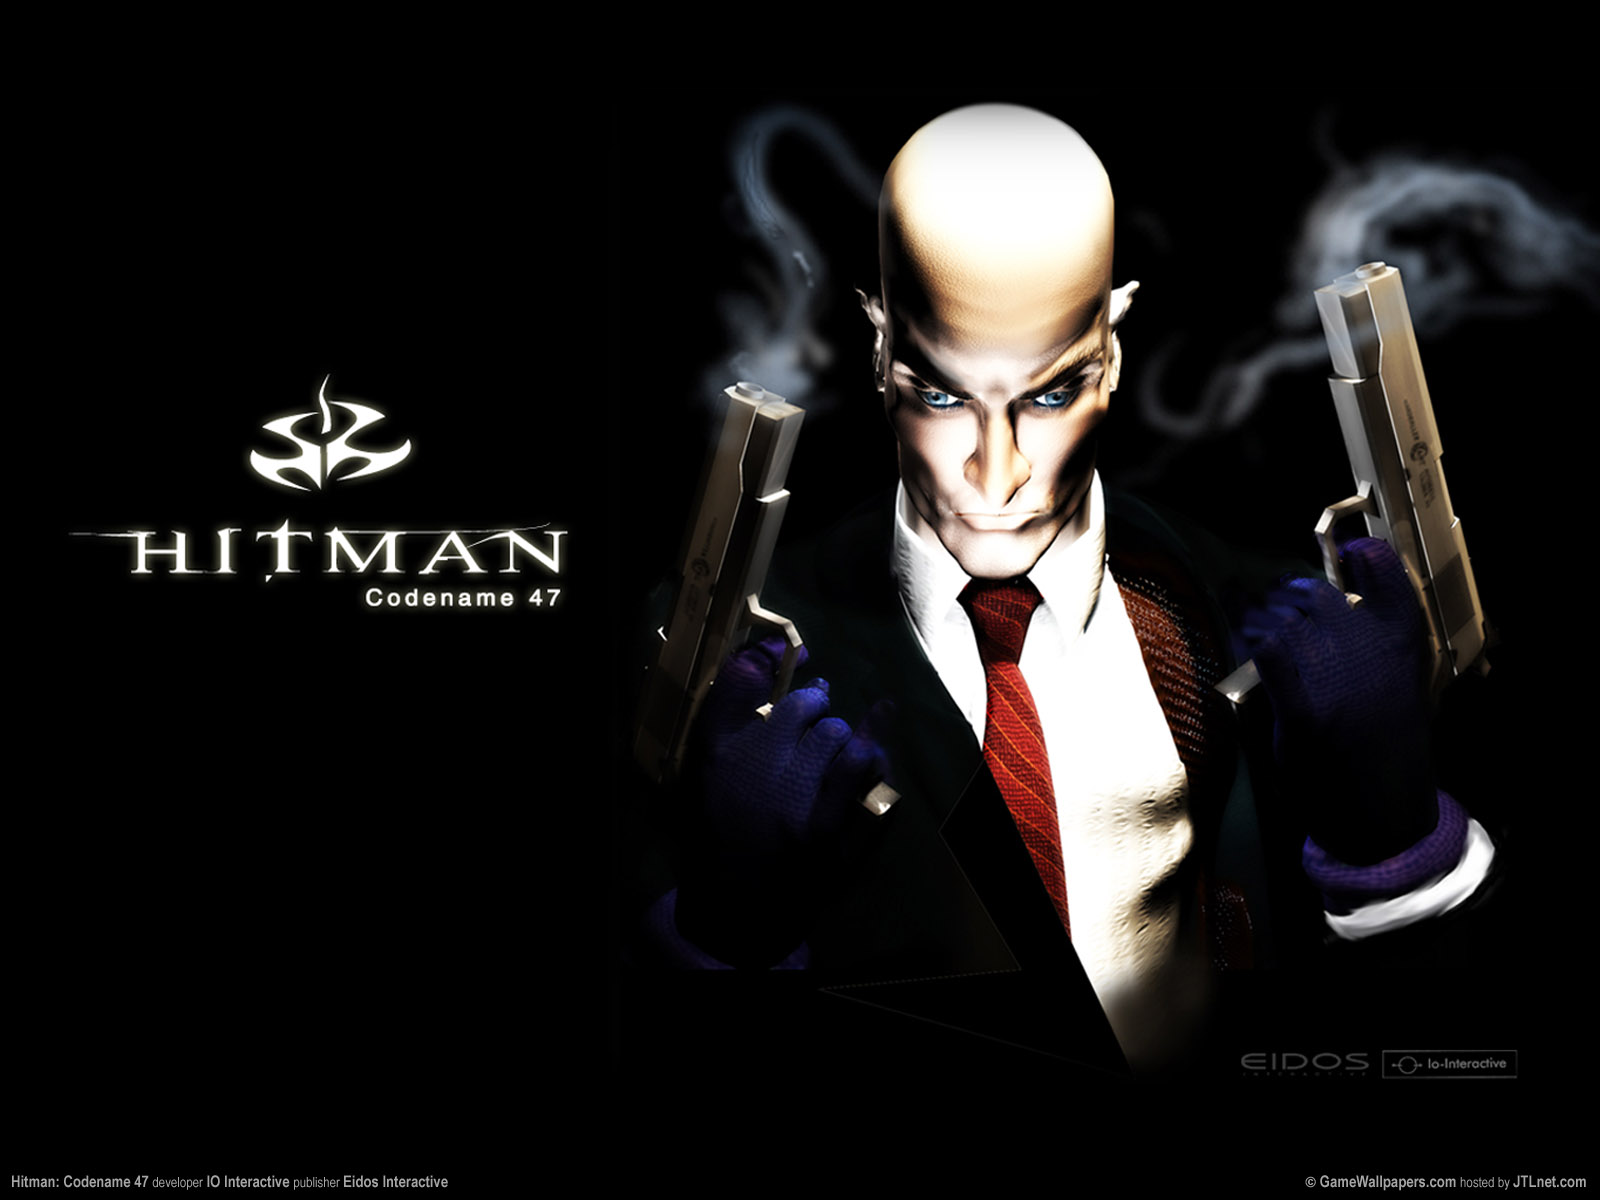 Hitman wallpaper HD | Hitman is a collection of HD wallpapers, suited for making wallpaper on your computer, laptop, or tablet.ini is one of a collection of ...